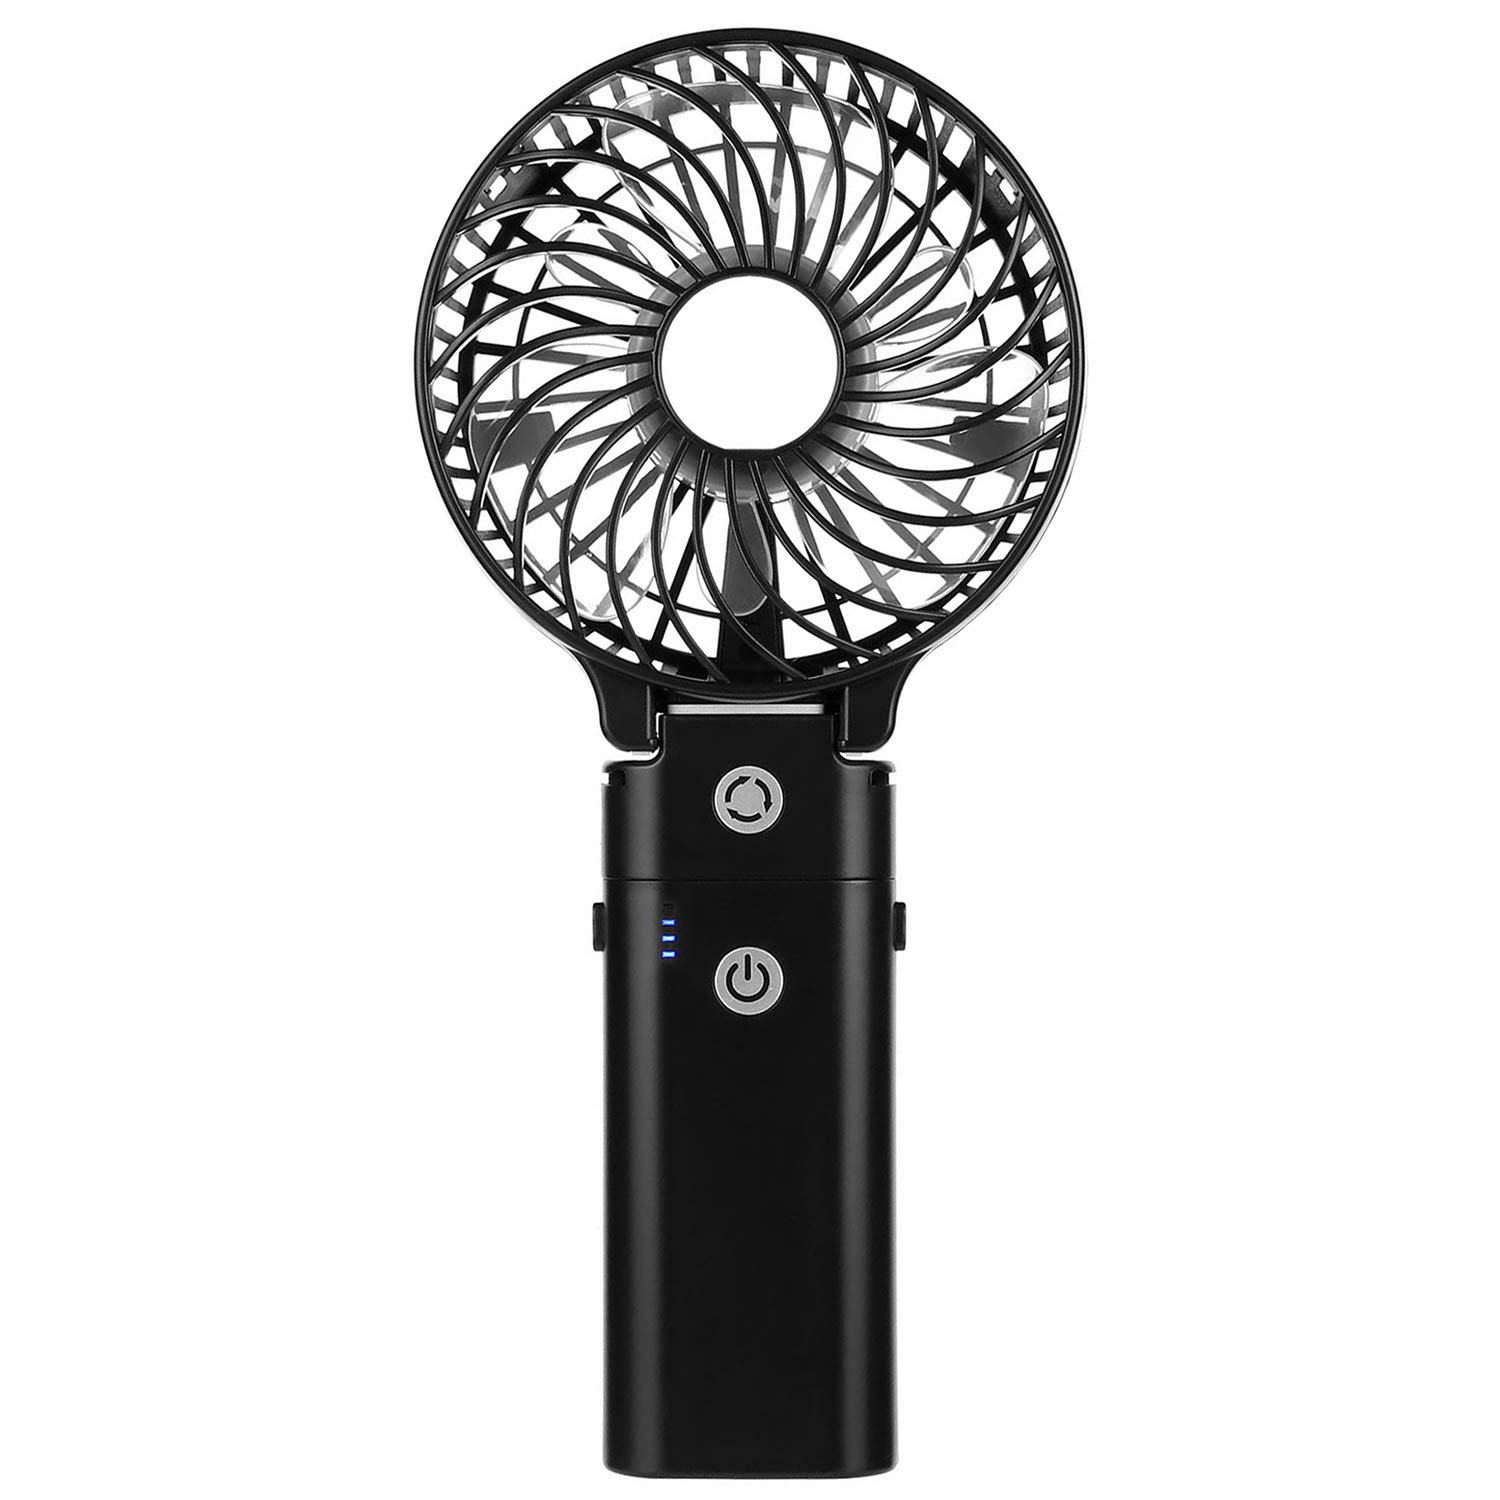 COMLIFE Handheld Fan with 5200mAh Power Bank, Portable Battery Powered Fan with 5-20H Working Time, 3 Speeds, Strong Airflow, Lightweight & Foldable Design, for Indoor and Outdoor Usage(Black)